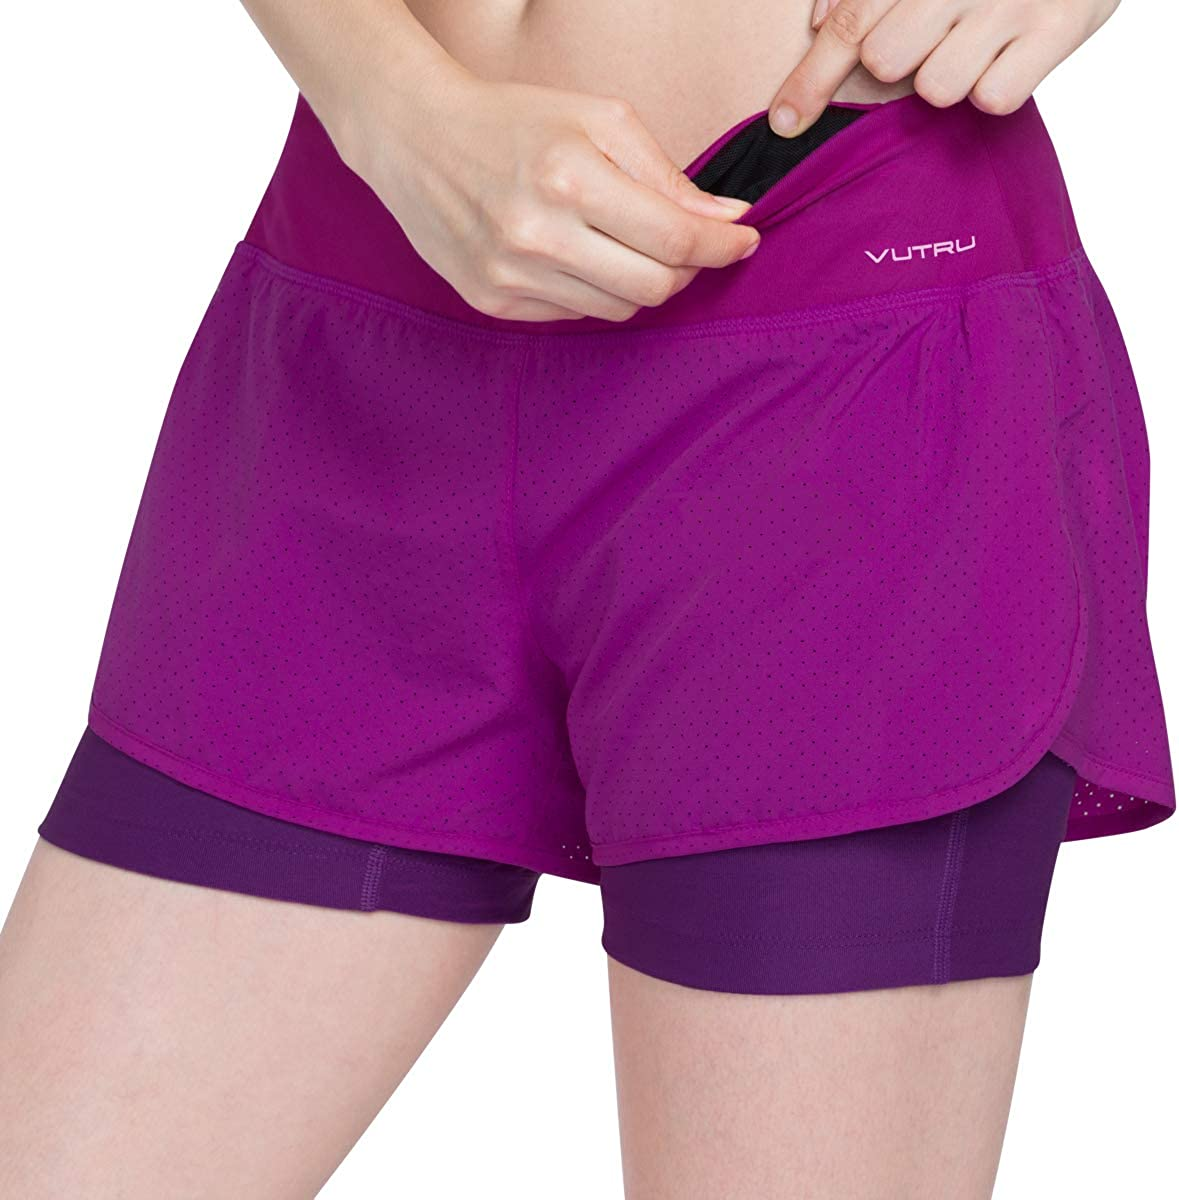 VUTRU Womens 2 in 1 Workout Sports Running Shorts with Zip Pocket Double Layer